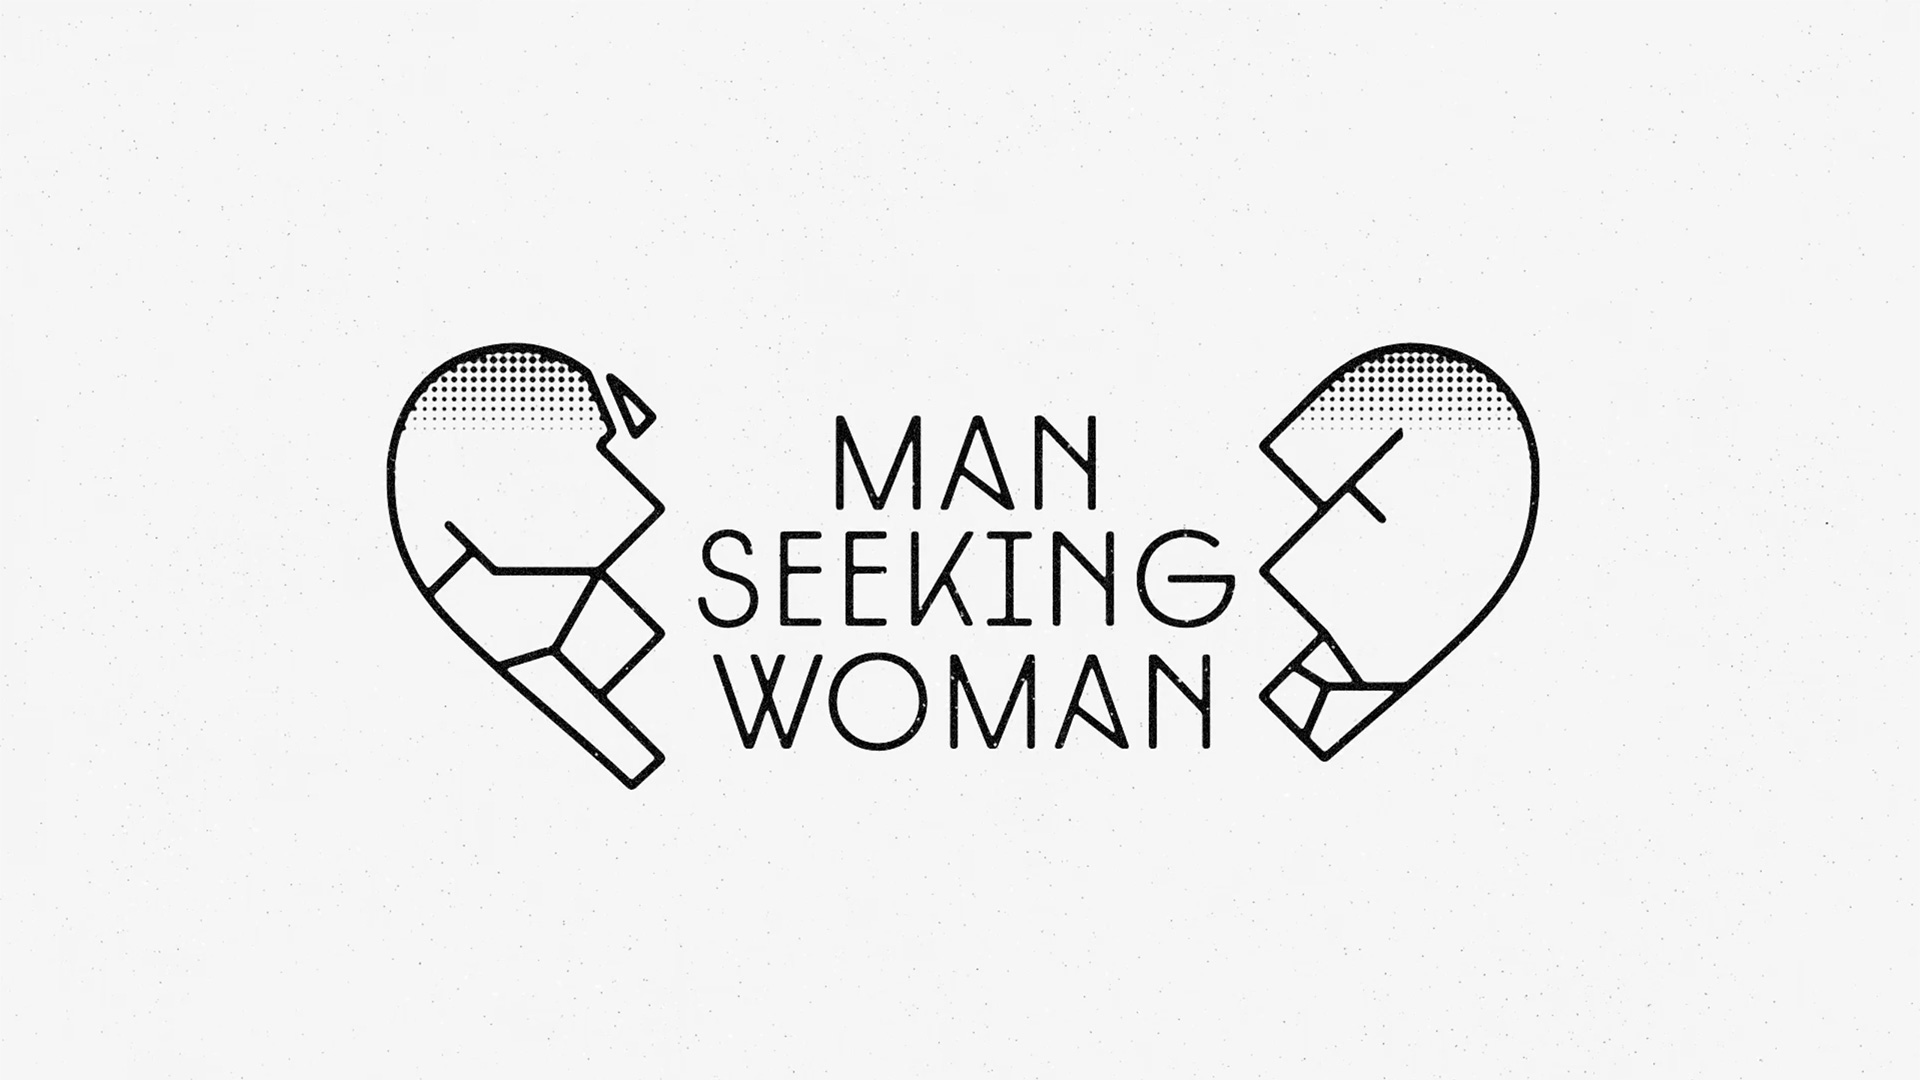 Man seeking women commercial